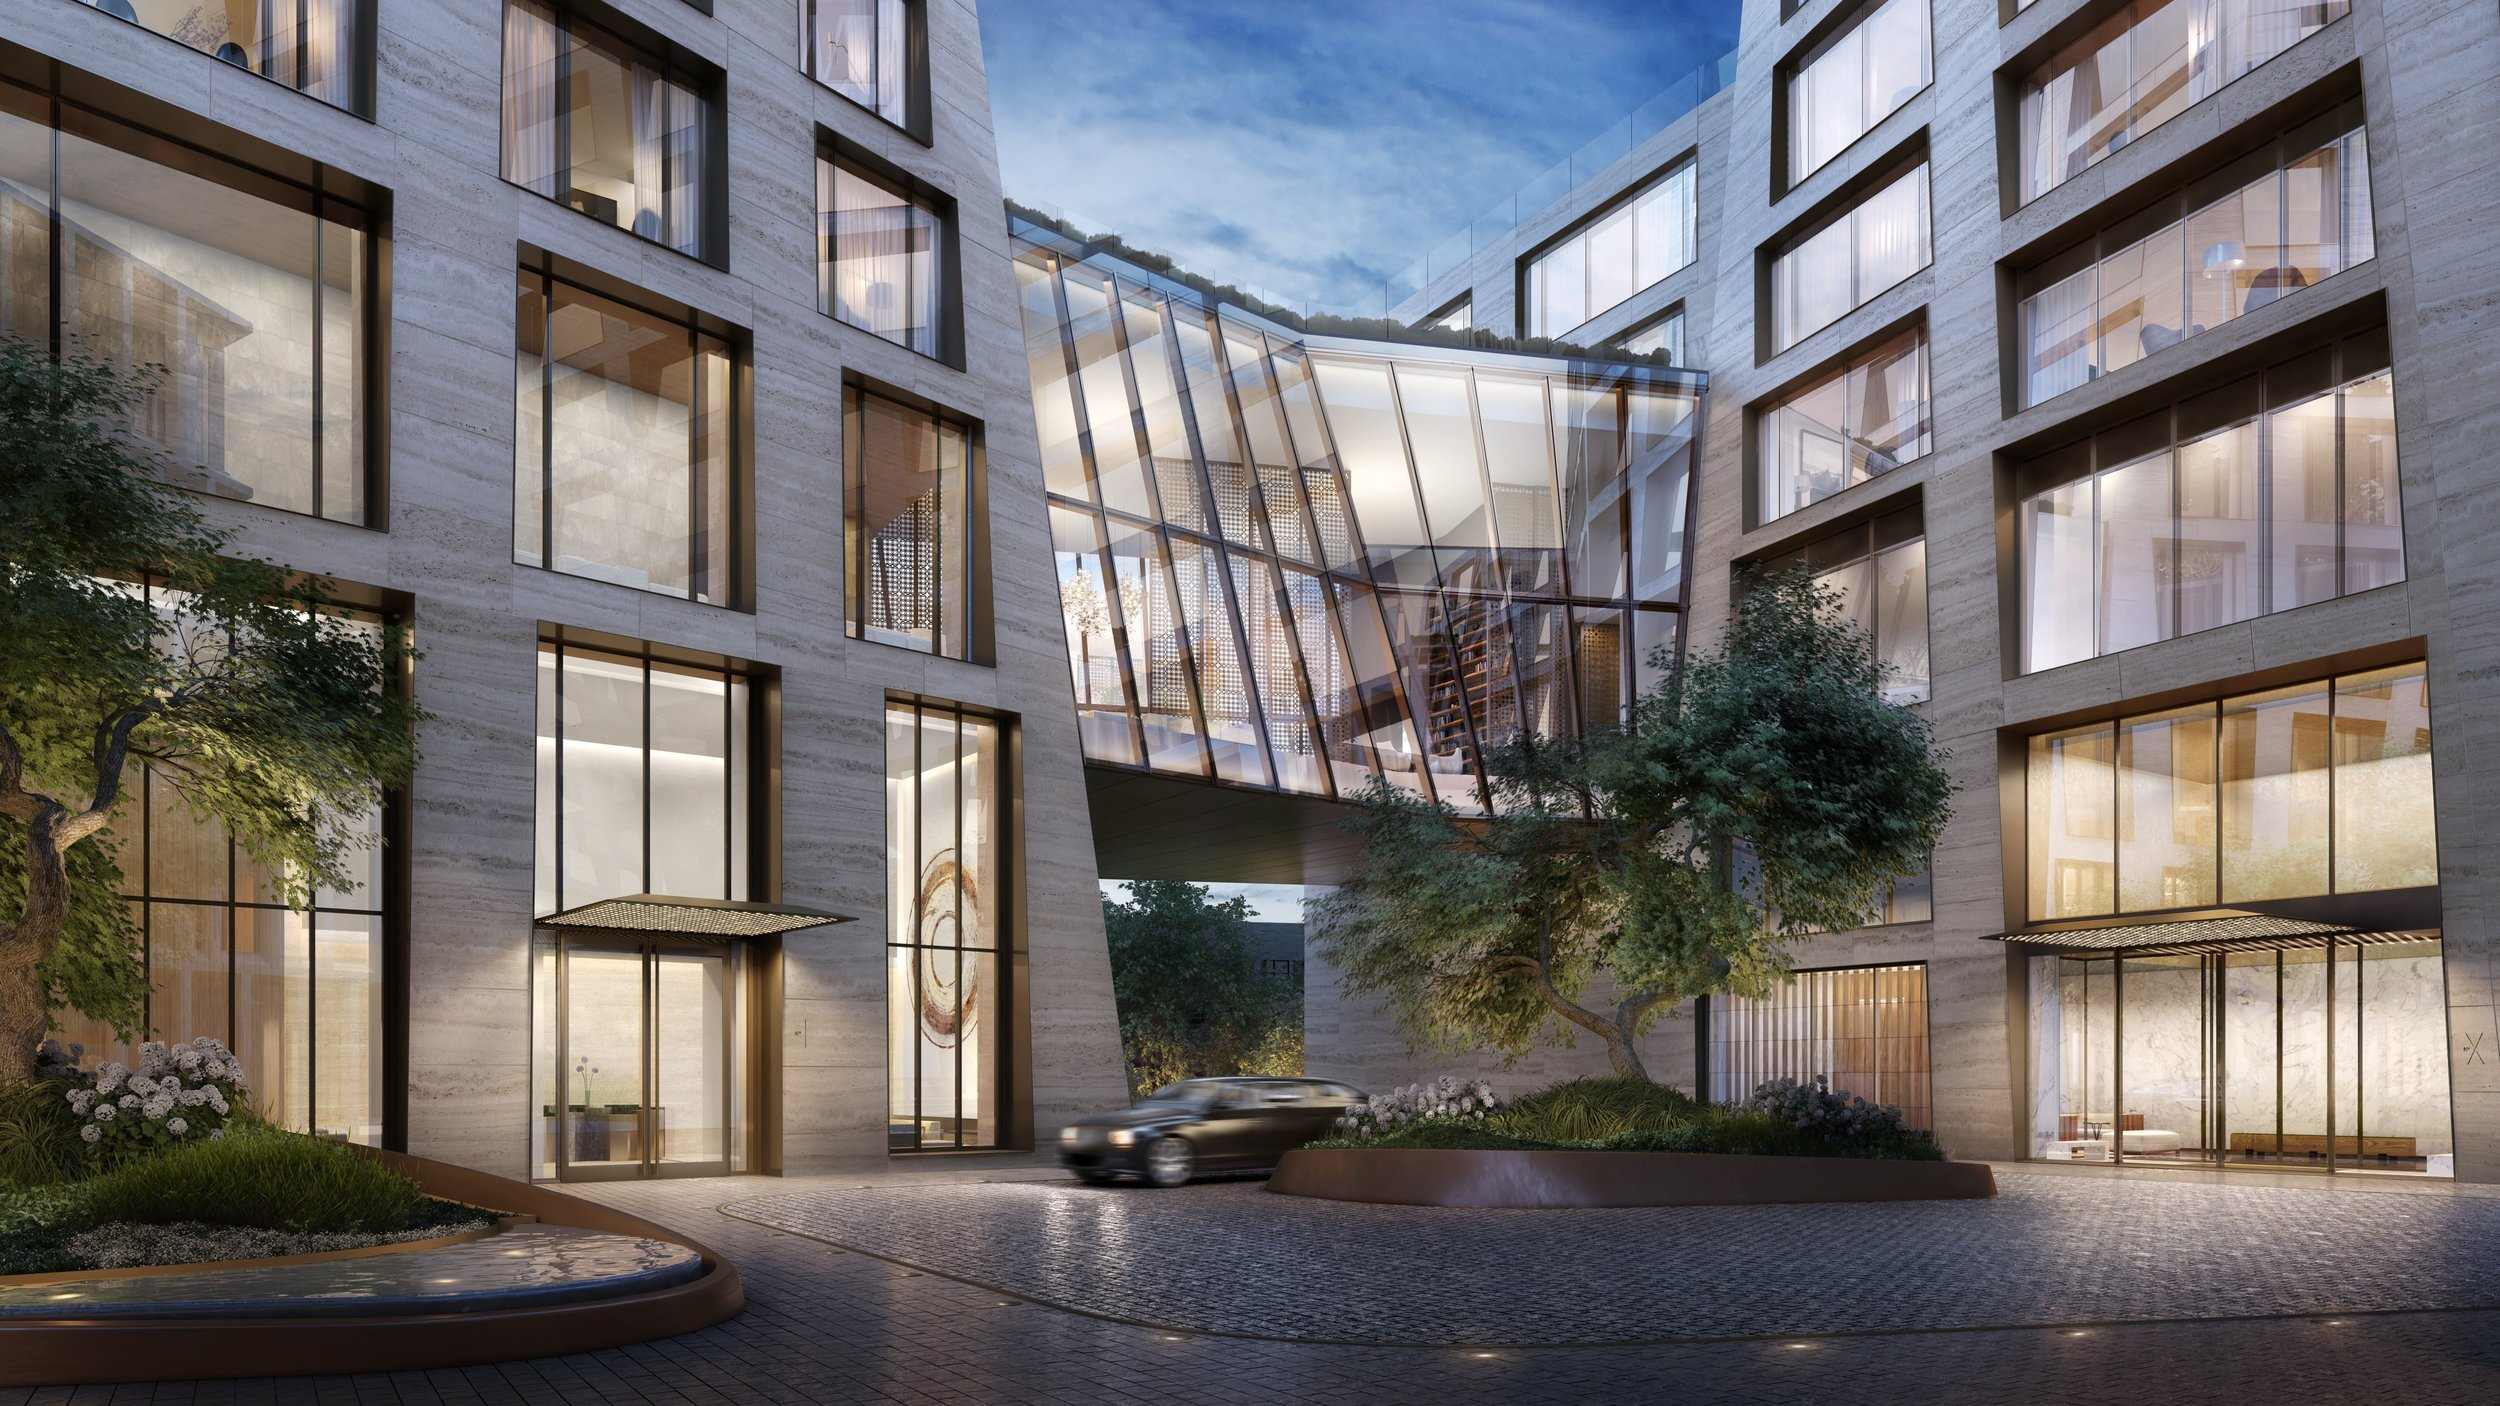 HFZ Capital Officially Launches Sales At The Bjarke Ingels-Designed XI